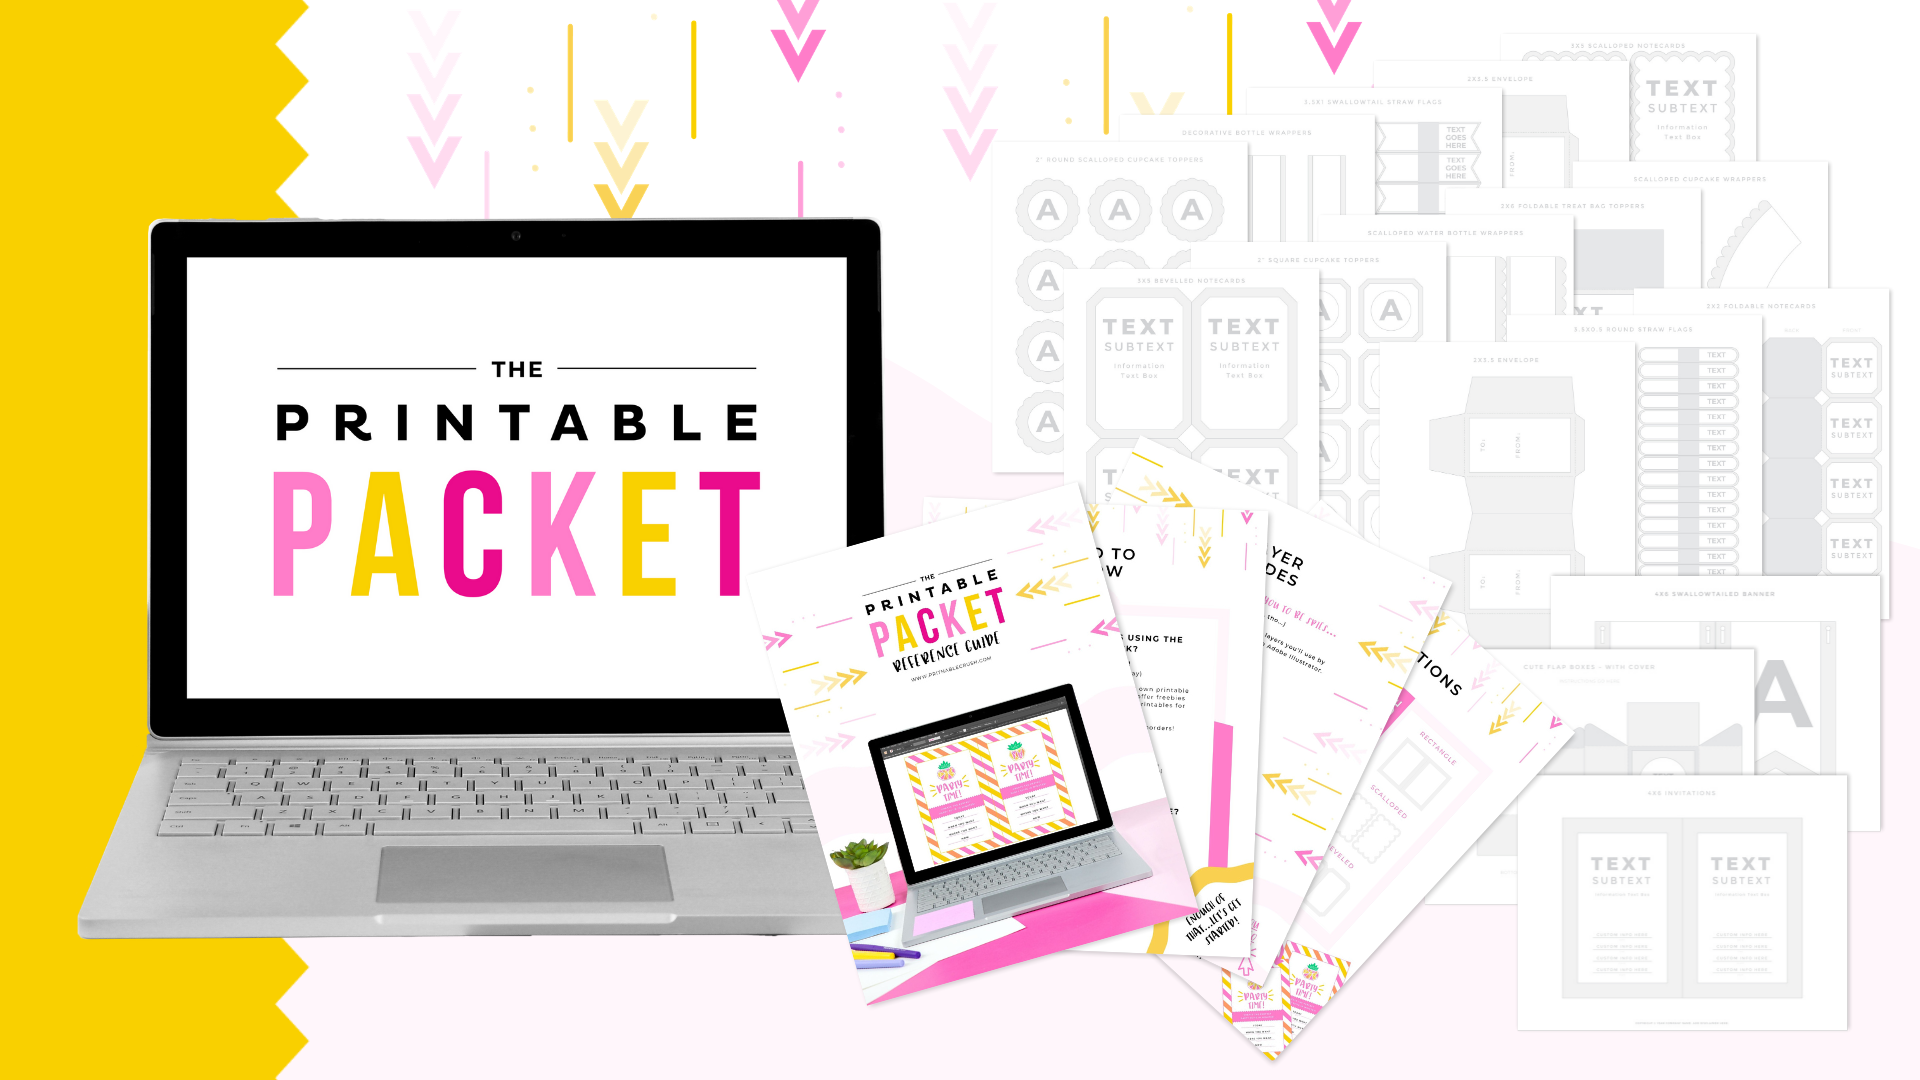 The Printable Packet